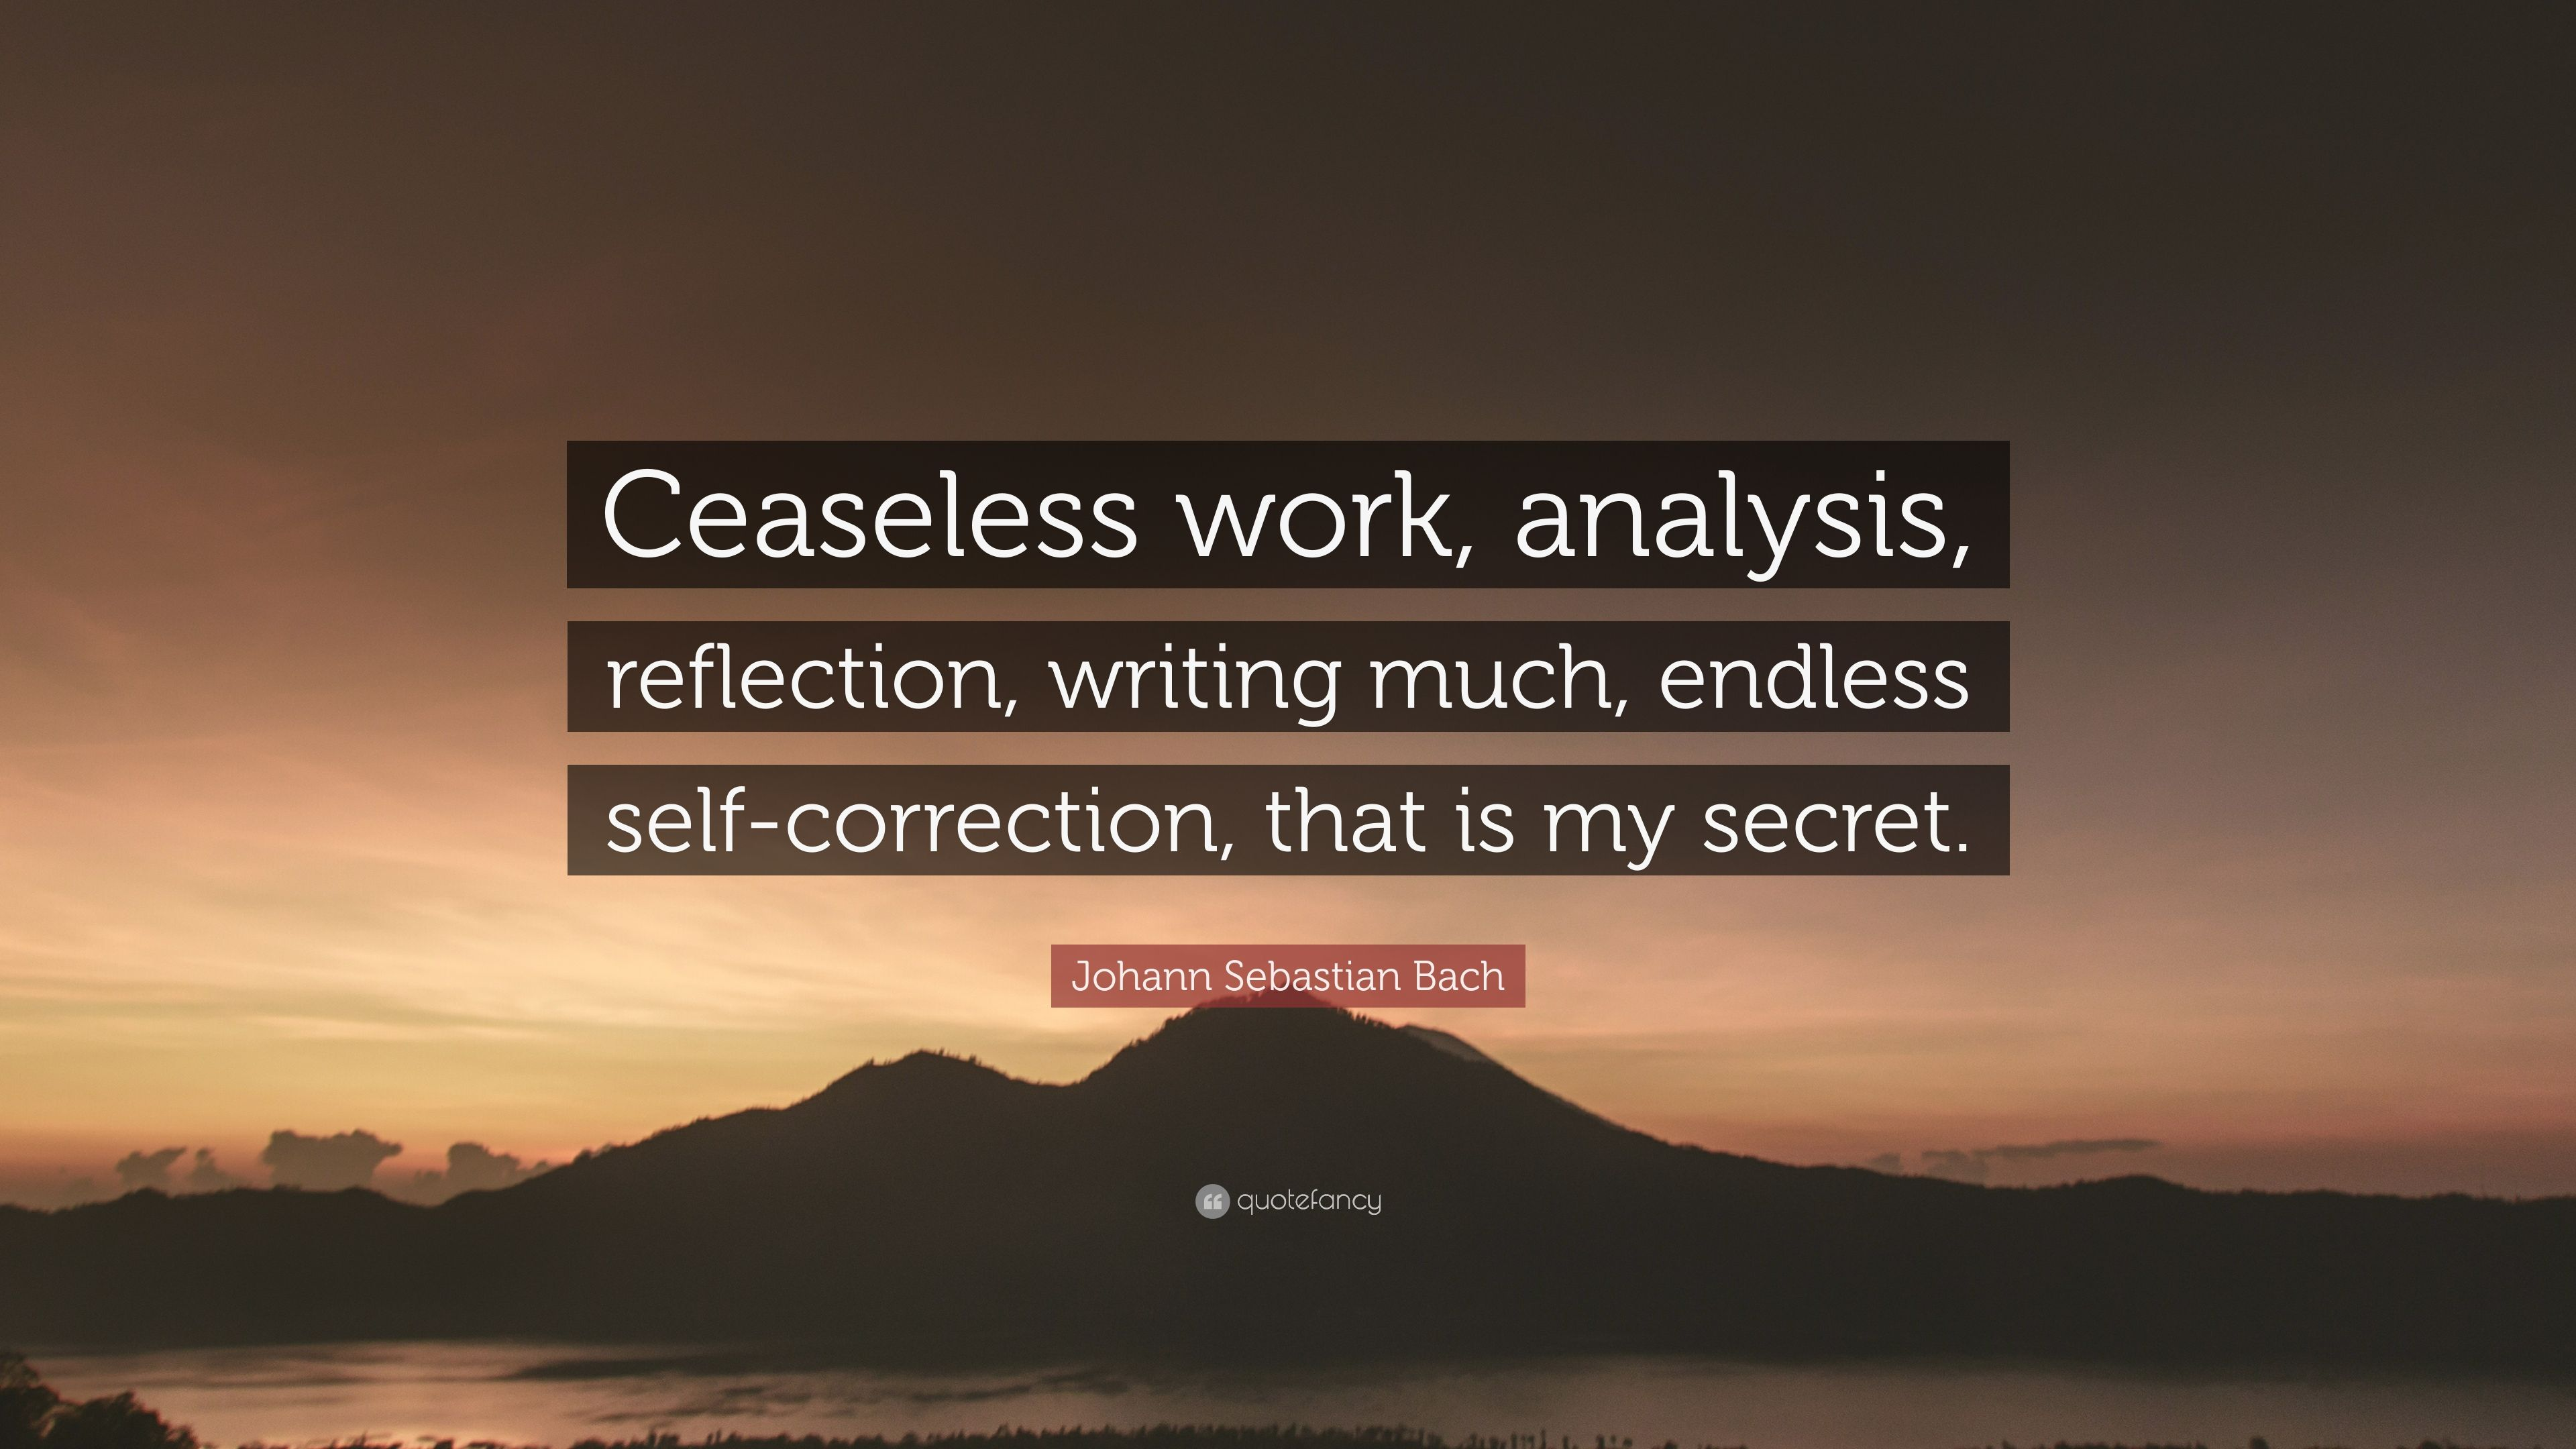 an analysis of the reflections as a writer